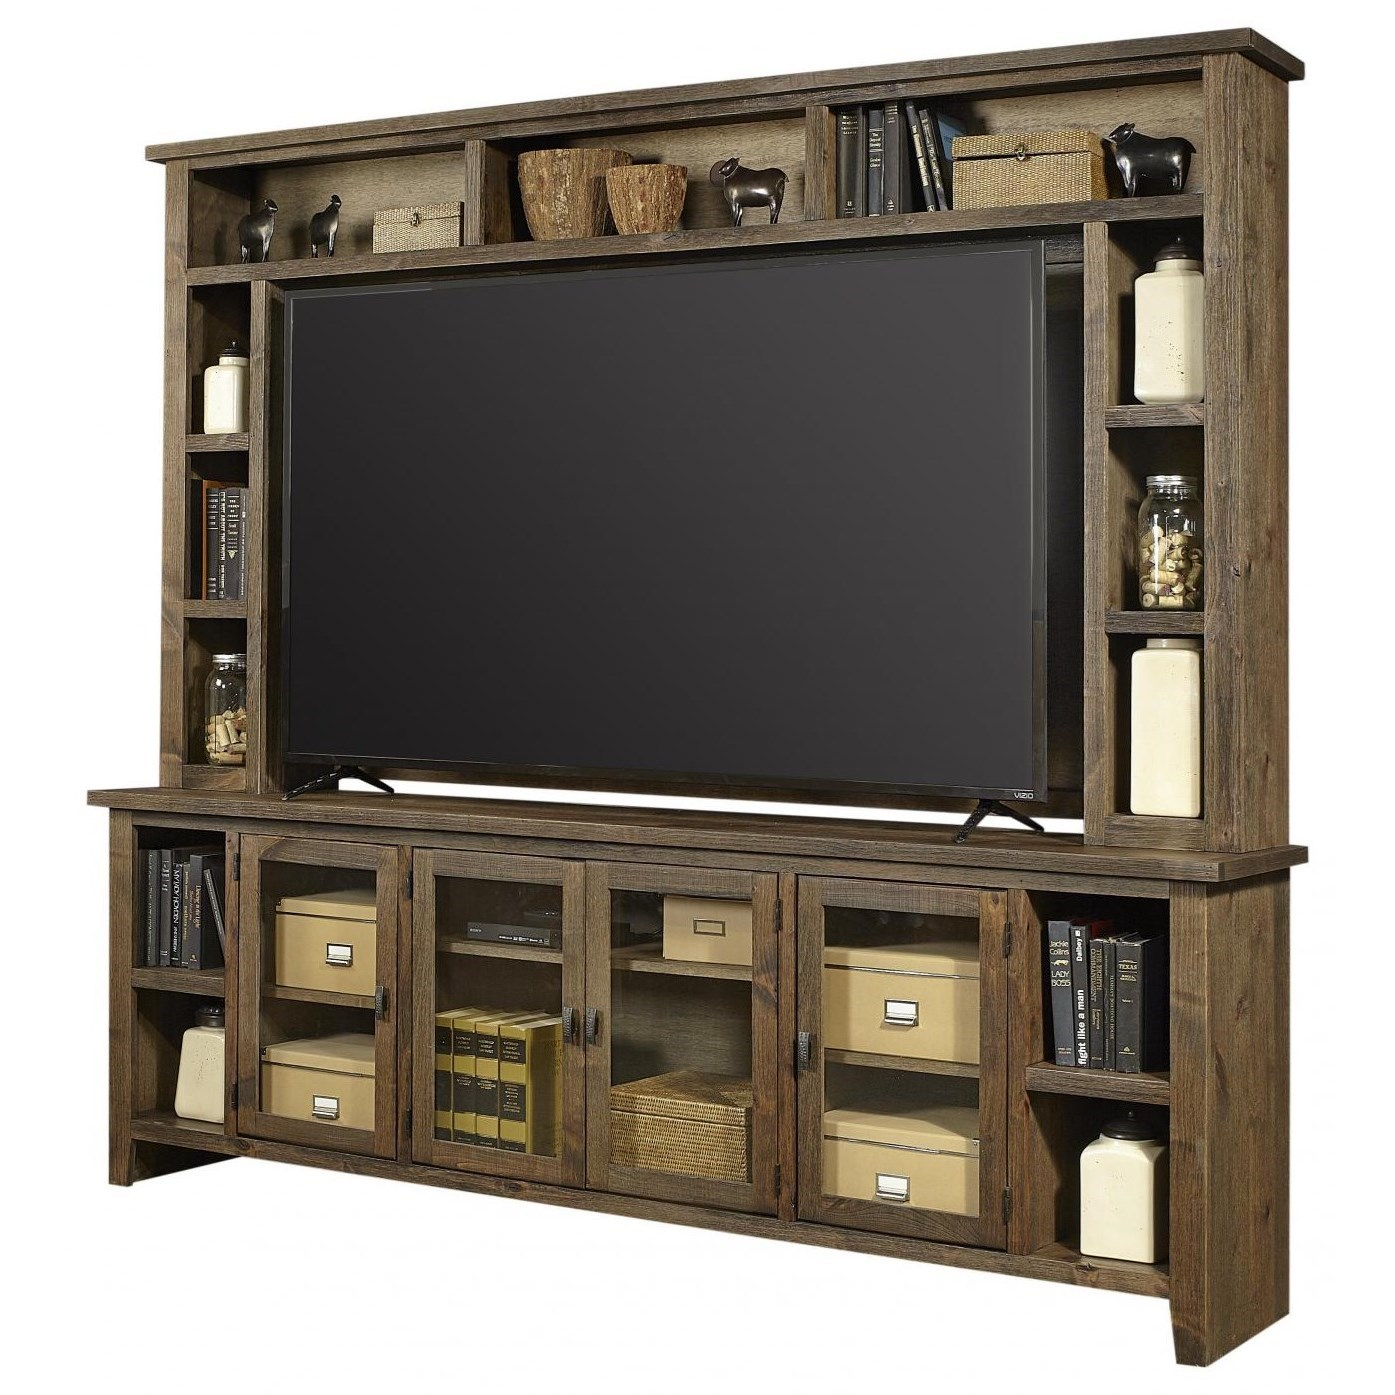 Alder Grove TV Stand with Hutch by Aspenhome at Fashion Furniture